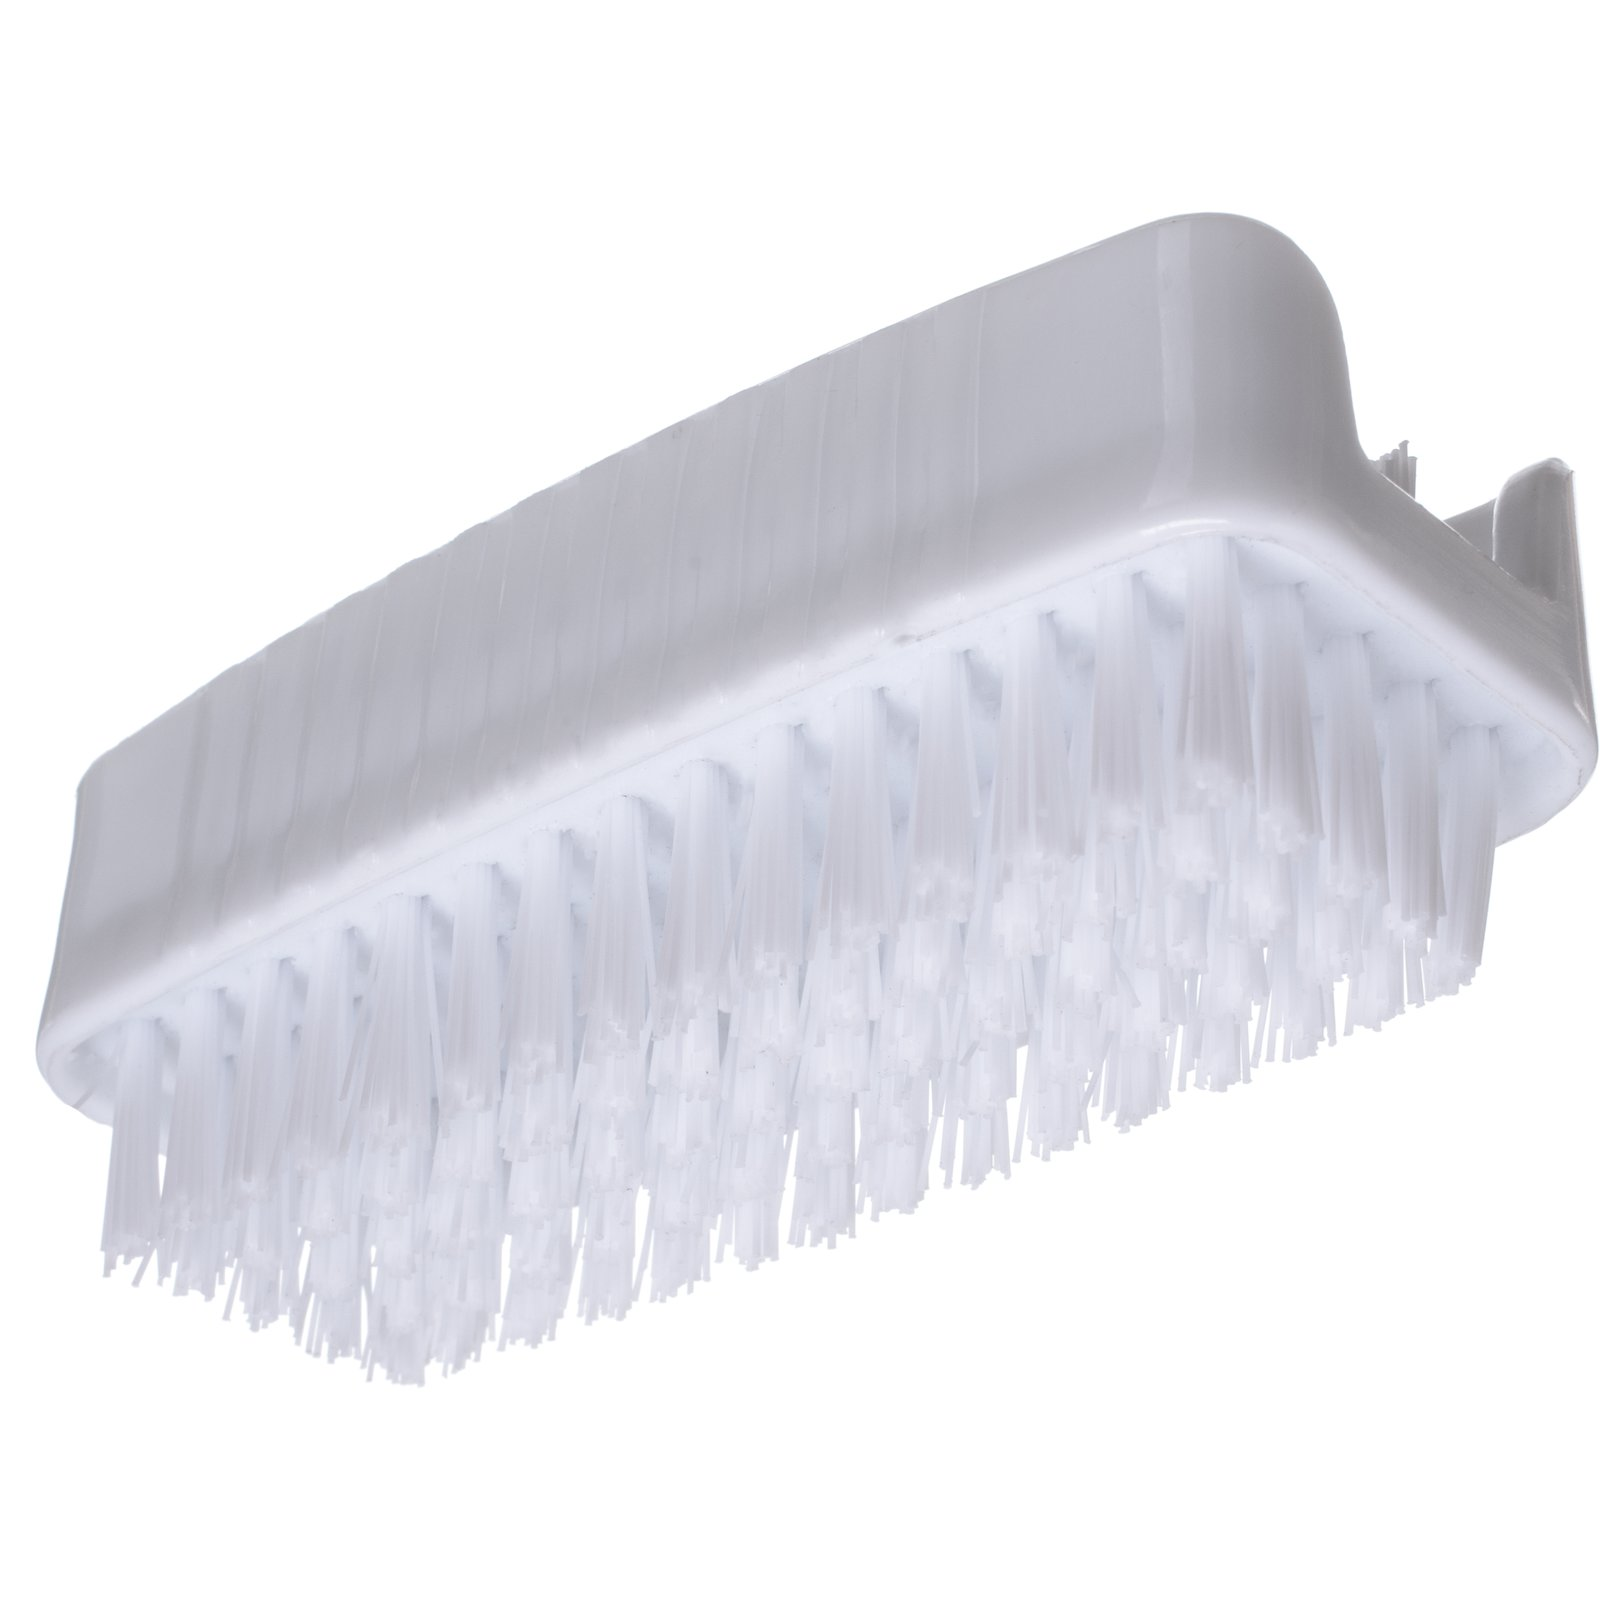 3623900 Sparta Hand Nail Brush With Polypropylene Bristles Carlisle Foodservice Products